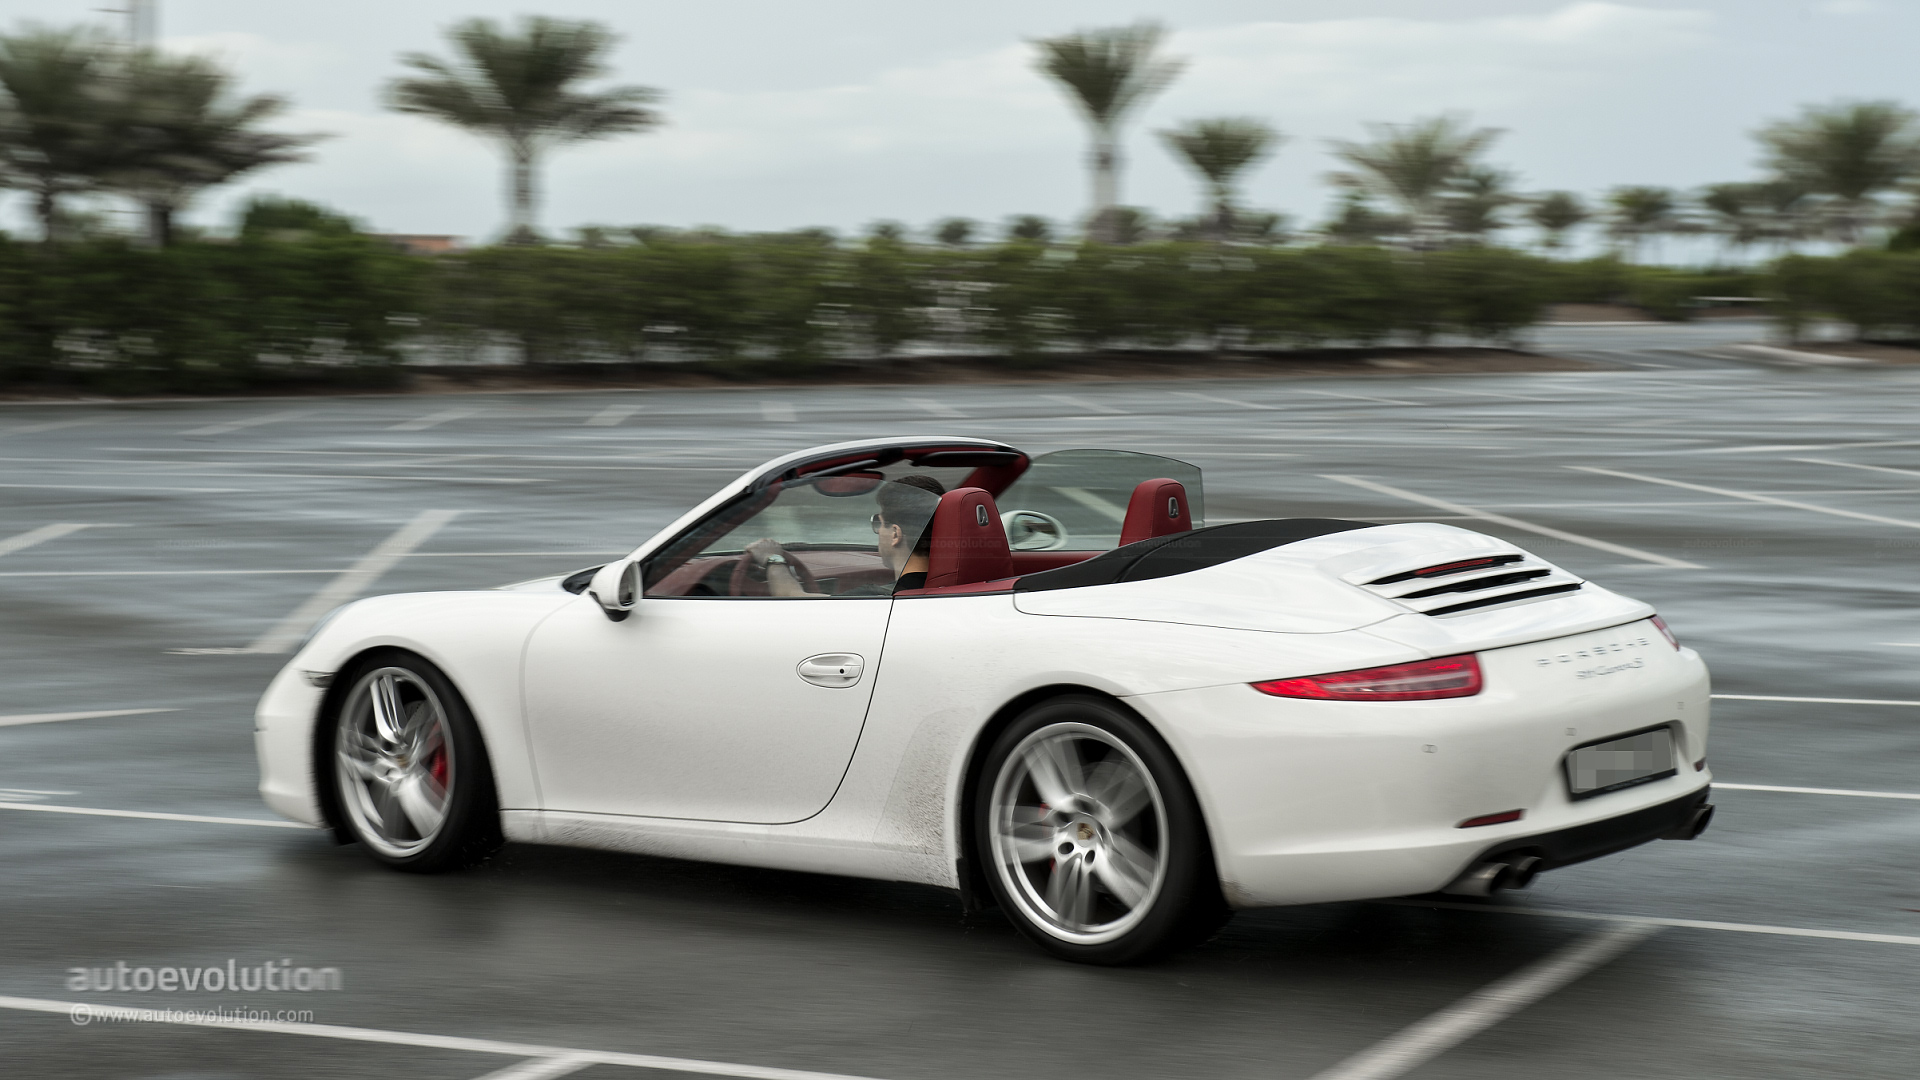 2019 Porsche 911 Carrera S Cabriolet photo - 6